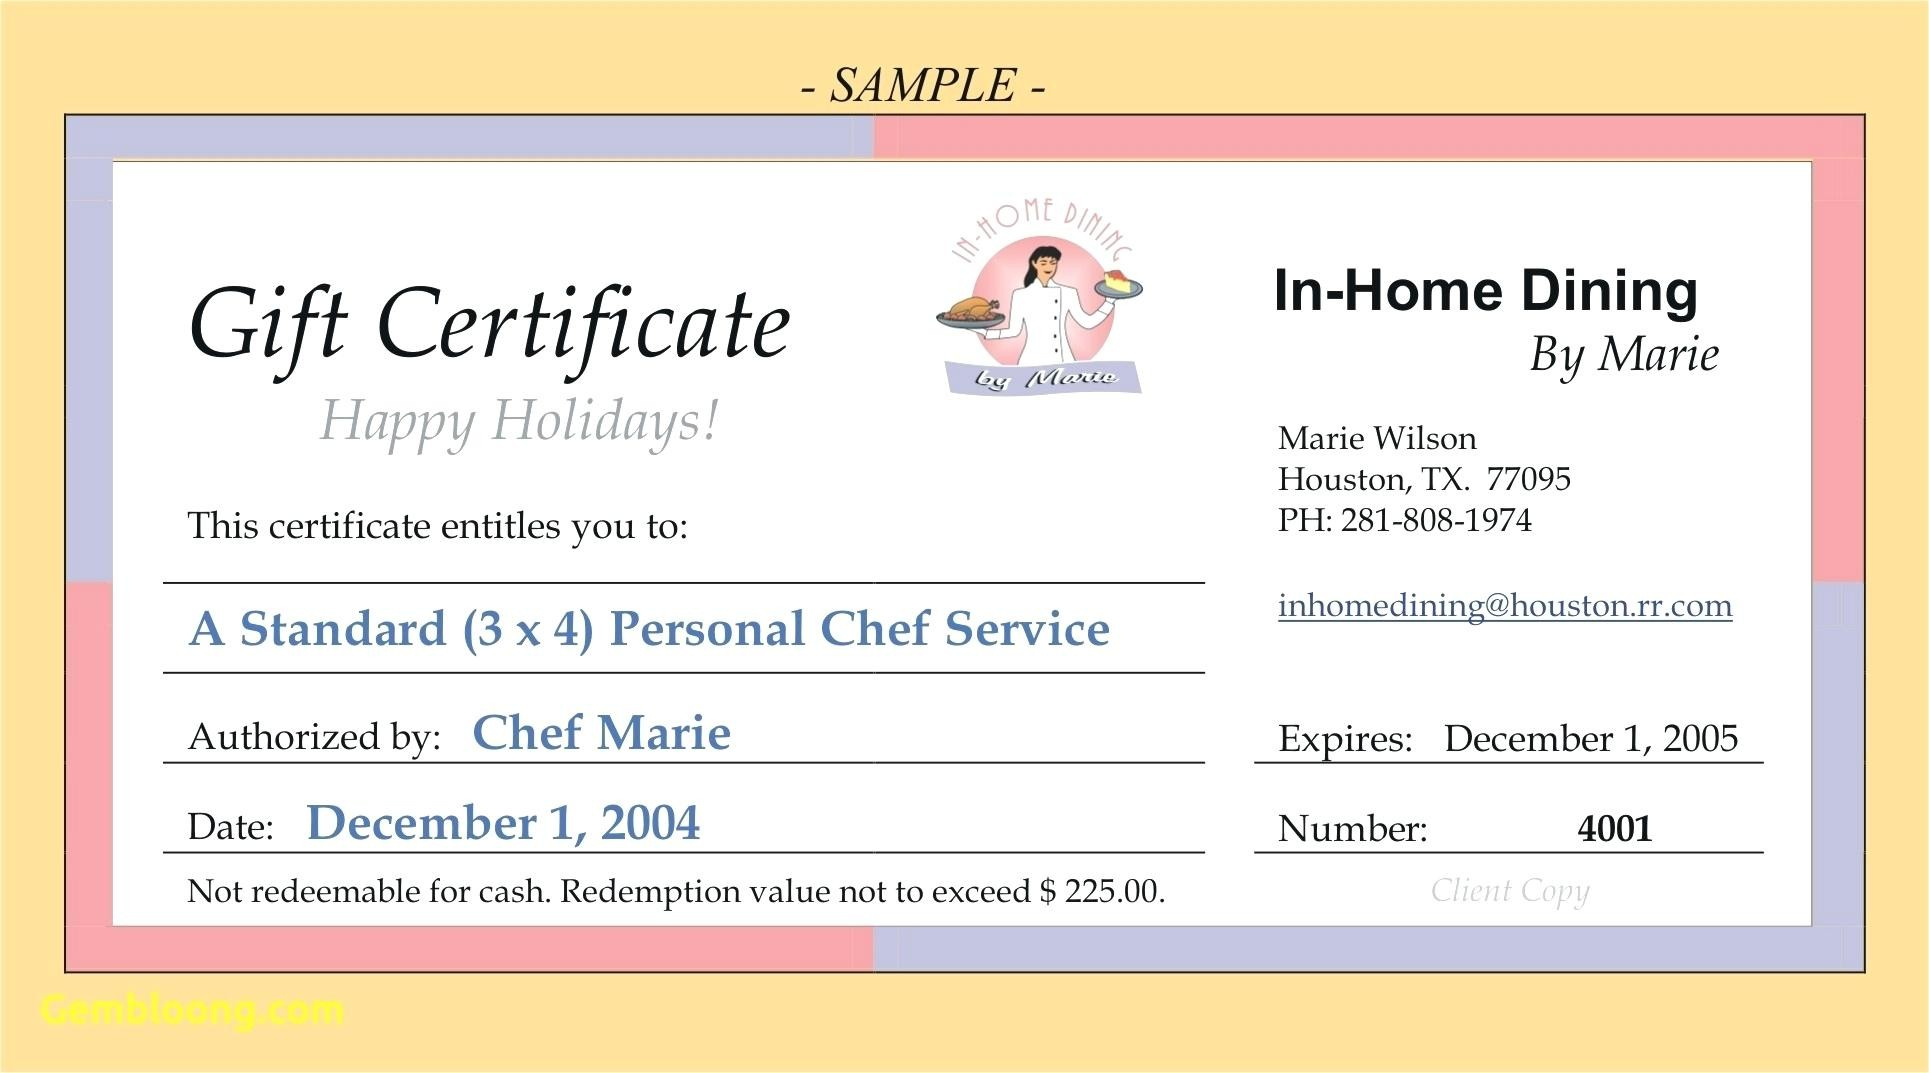 Certificate Templates Free Uk Filename  Elsik Blue Cetane For This Certificate Entitles The Bearer Template